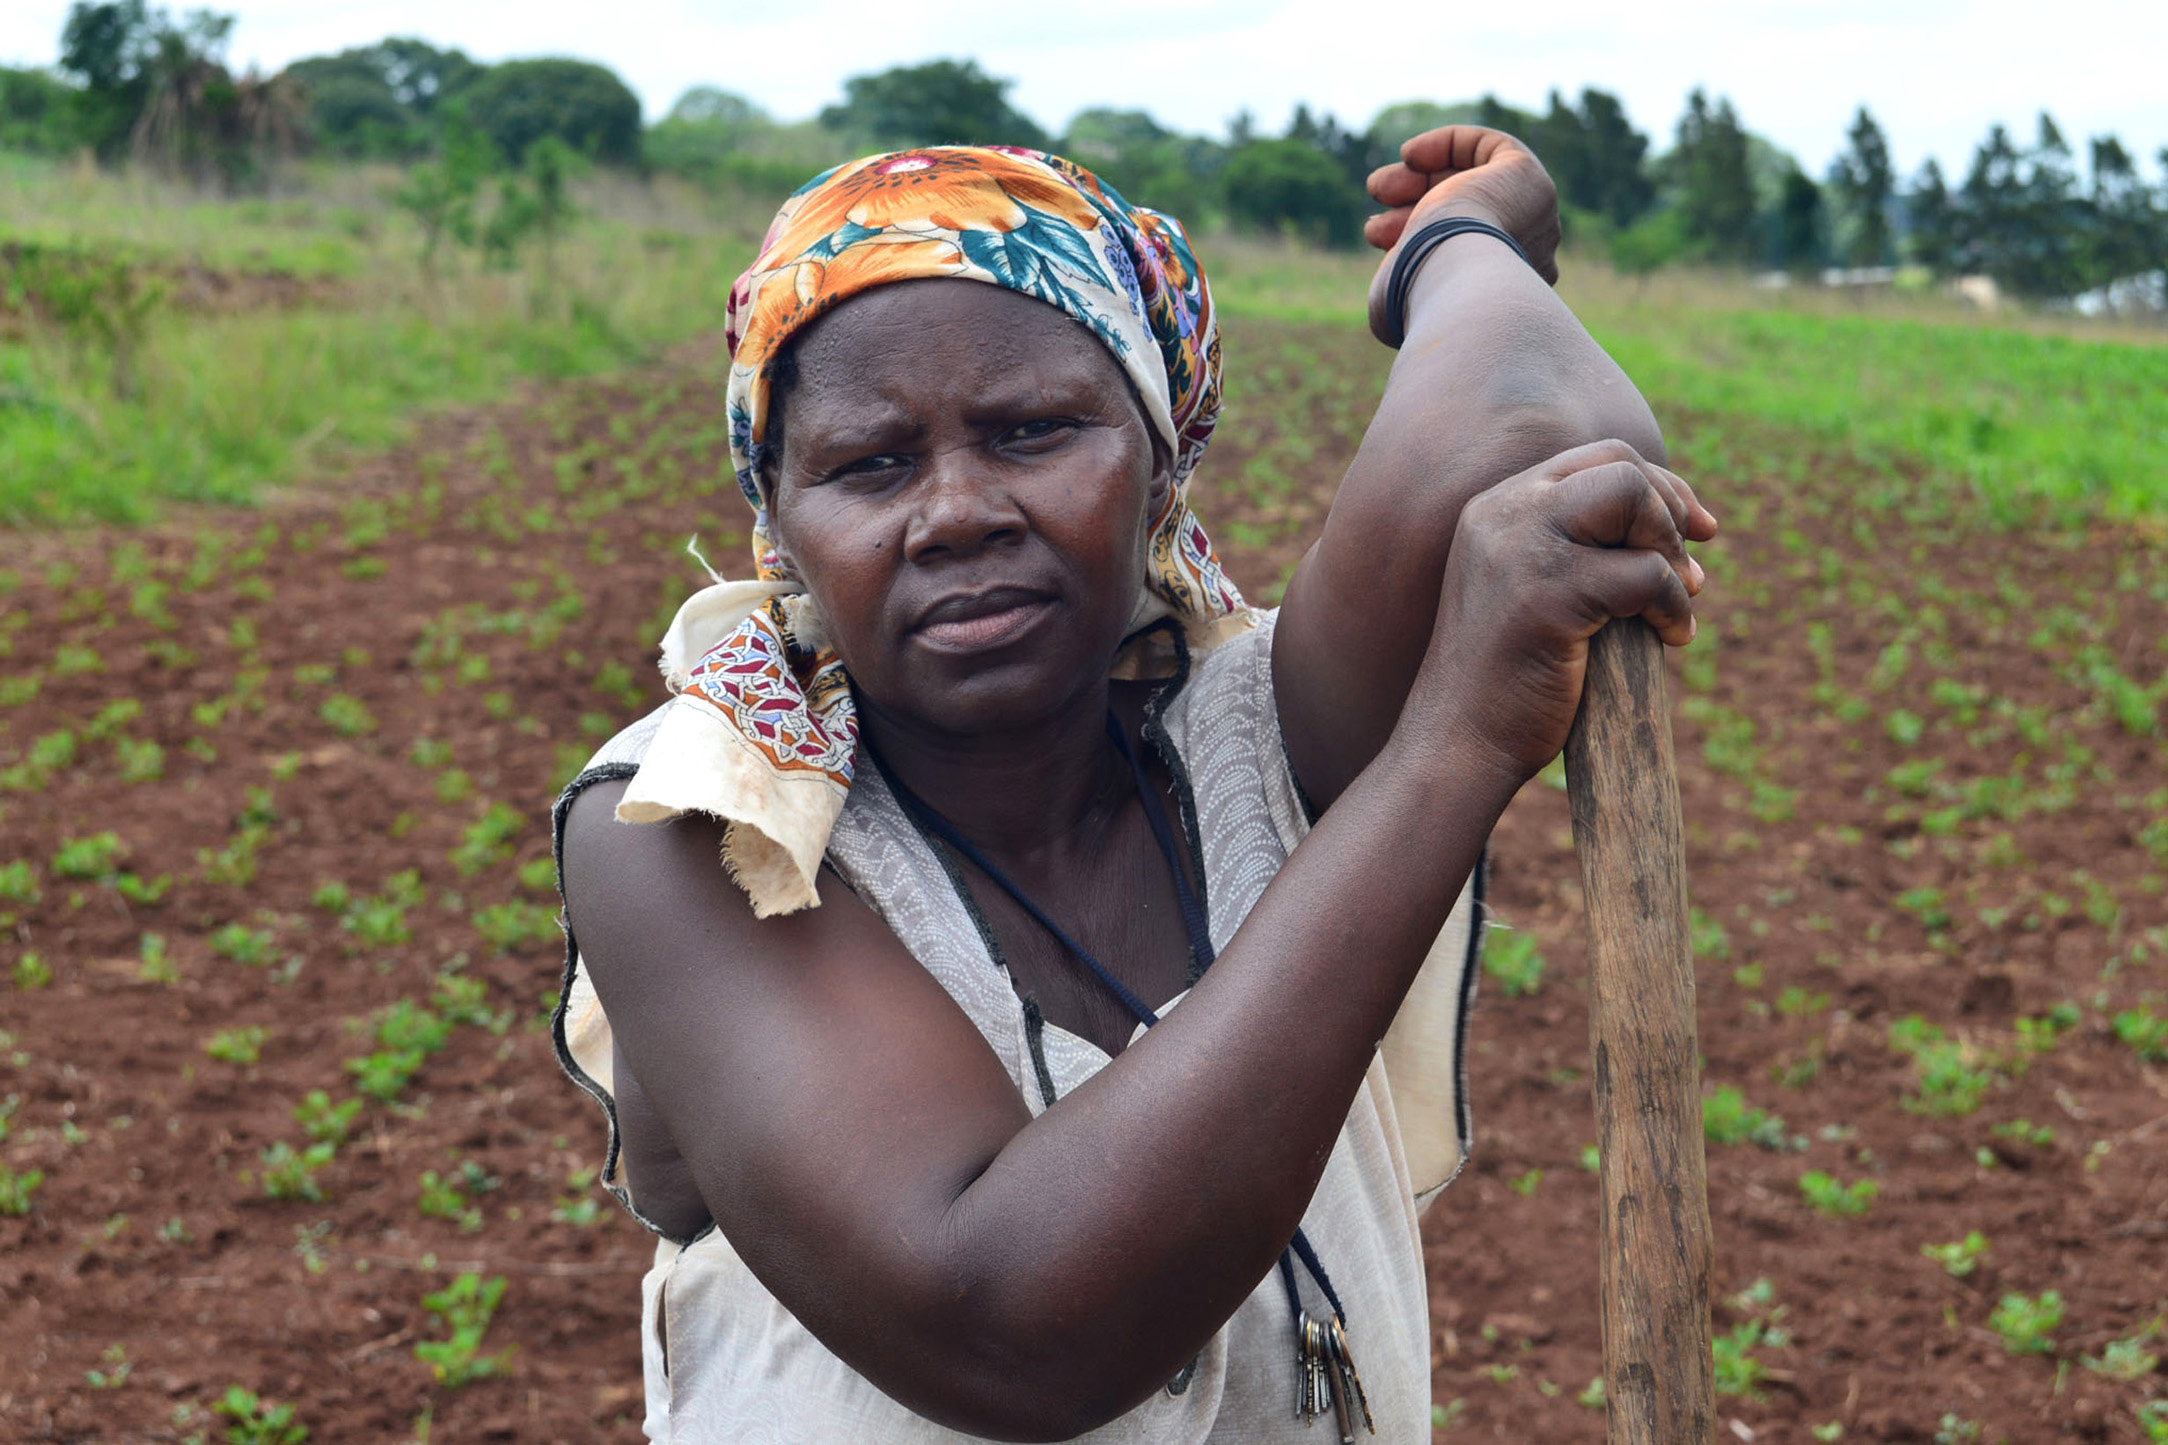 A smallholder farmer from the village of Shewula in Swaziland's northeastern Lubombo region